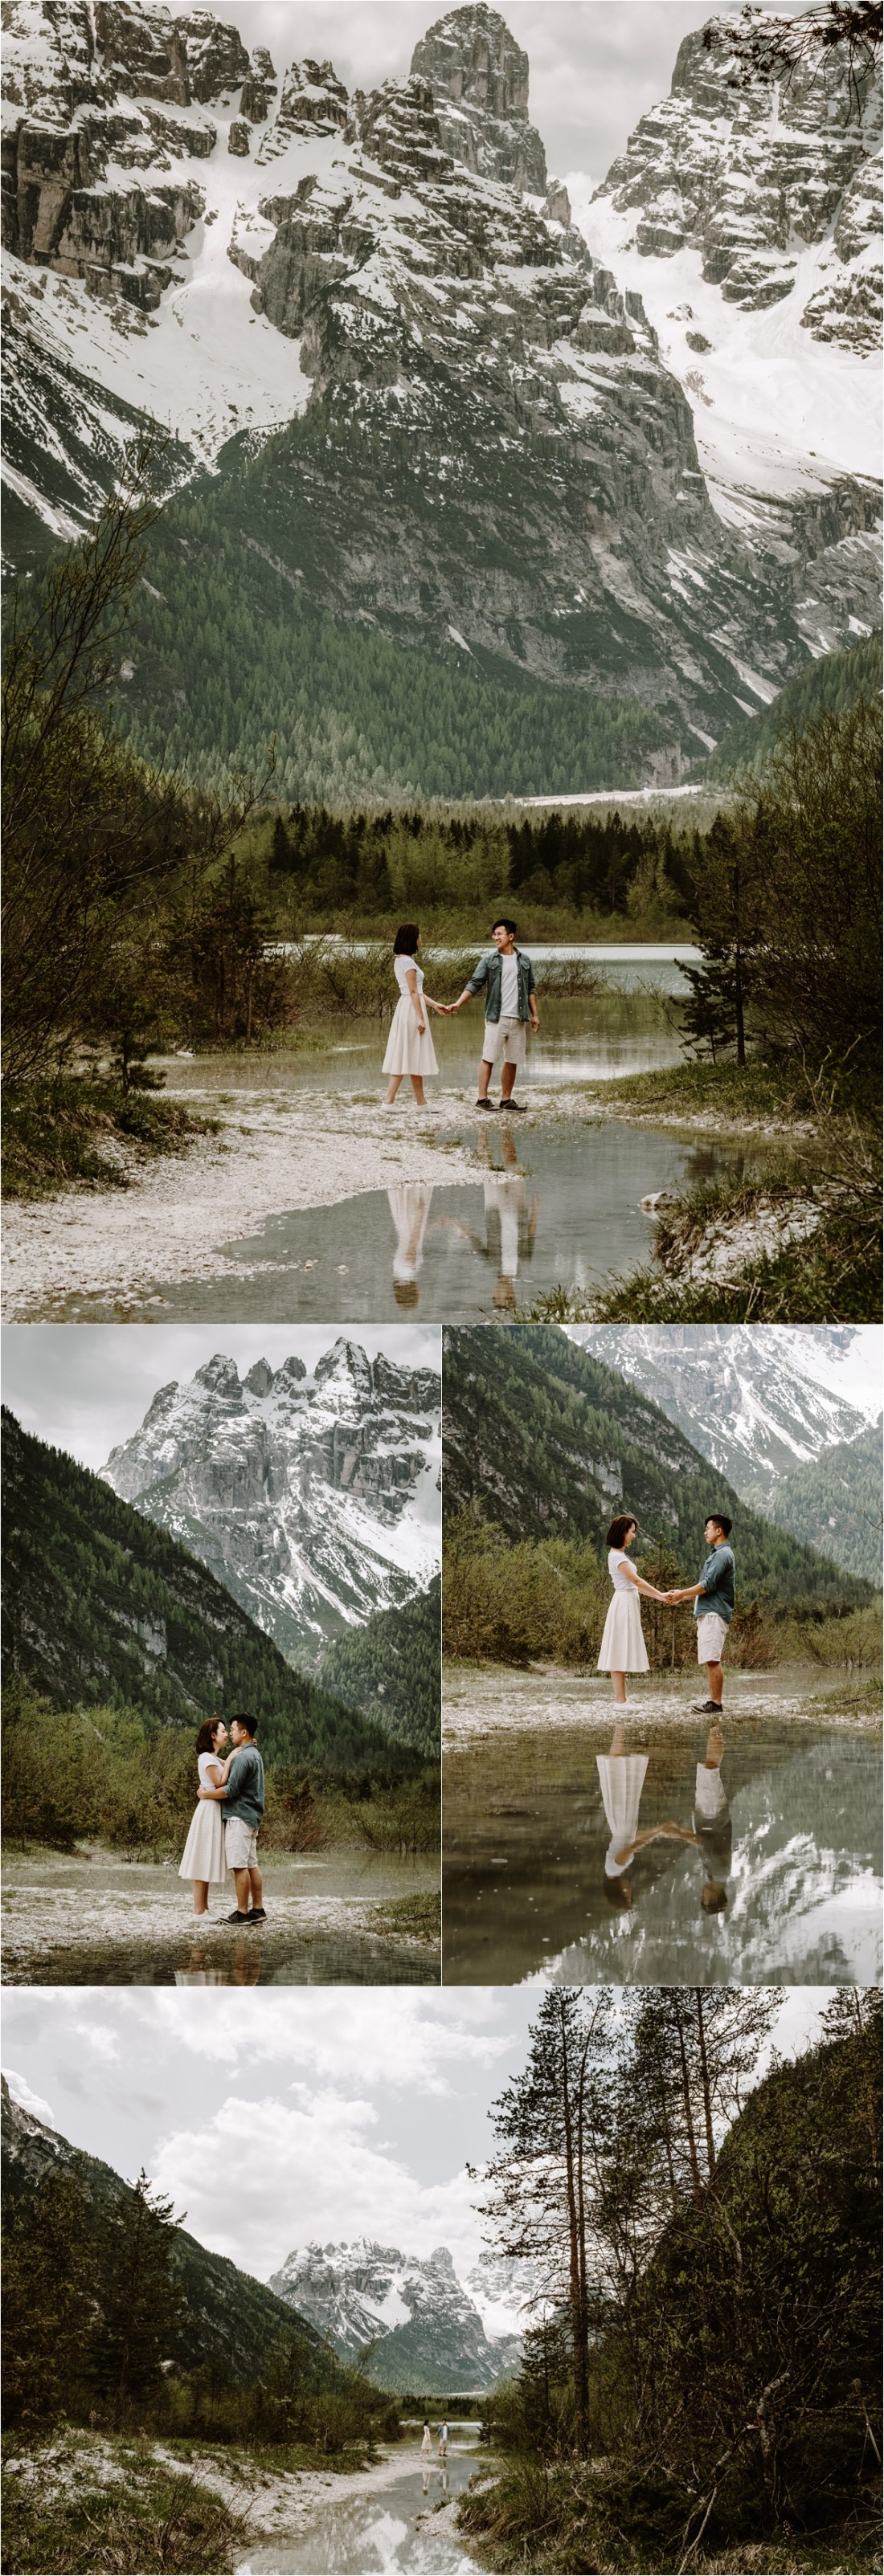 An engagement shoot at a mountain lake in the Italian Alps. Photo by Dolomites photographer Wild Connections Photography